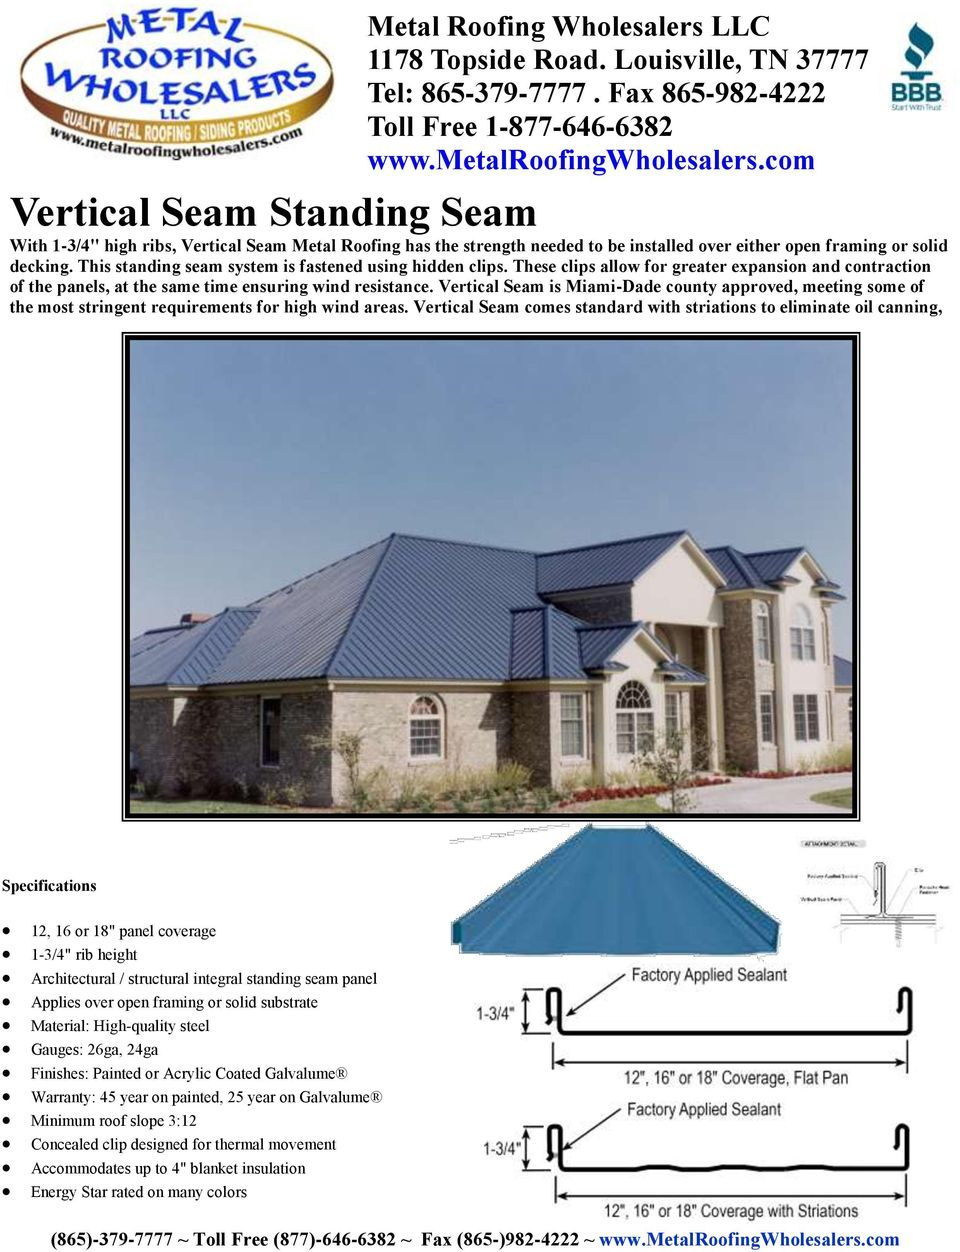 Vertical Seam is Miami-Dade county approved, meeting some of the most stringent requirements for high wind areas.